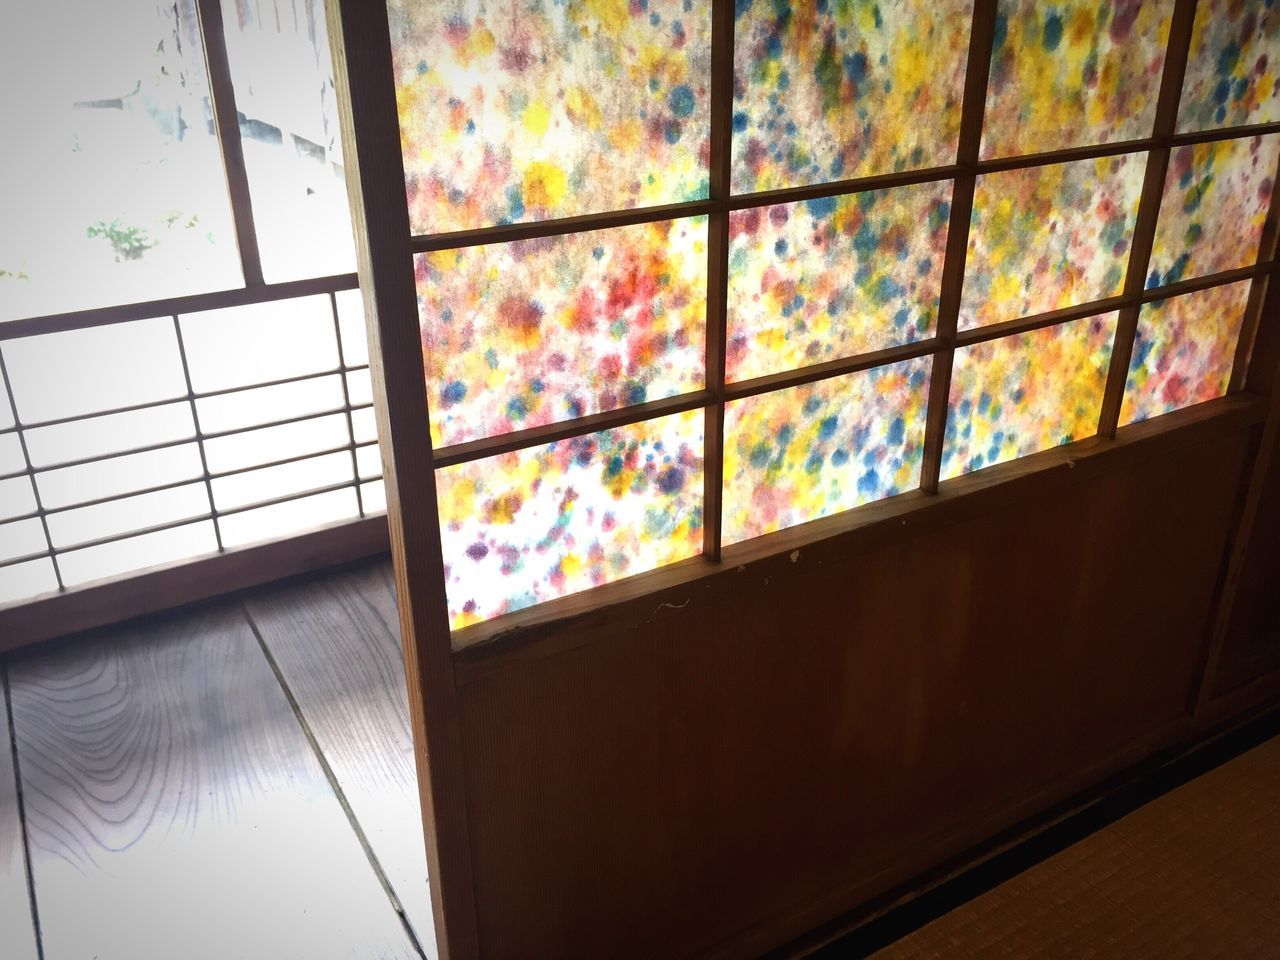 window, indoors, no people, home interior, multi colored, day, architecture, close-up